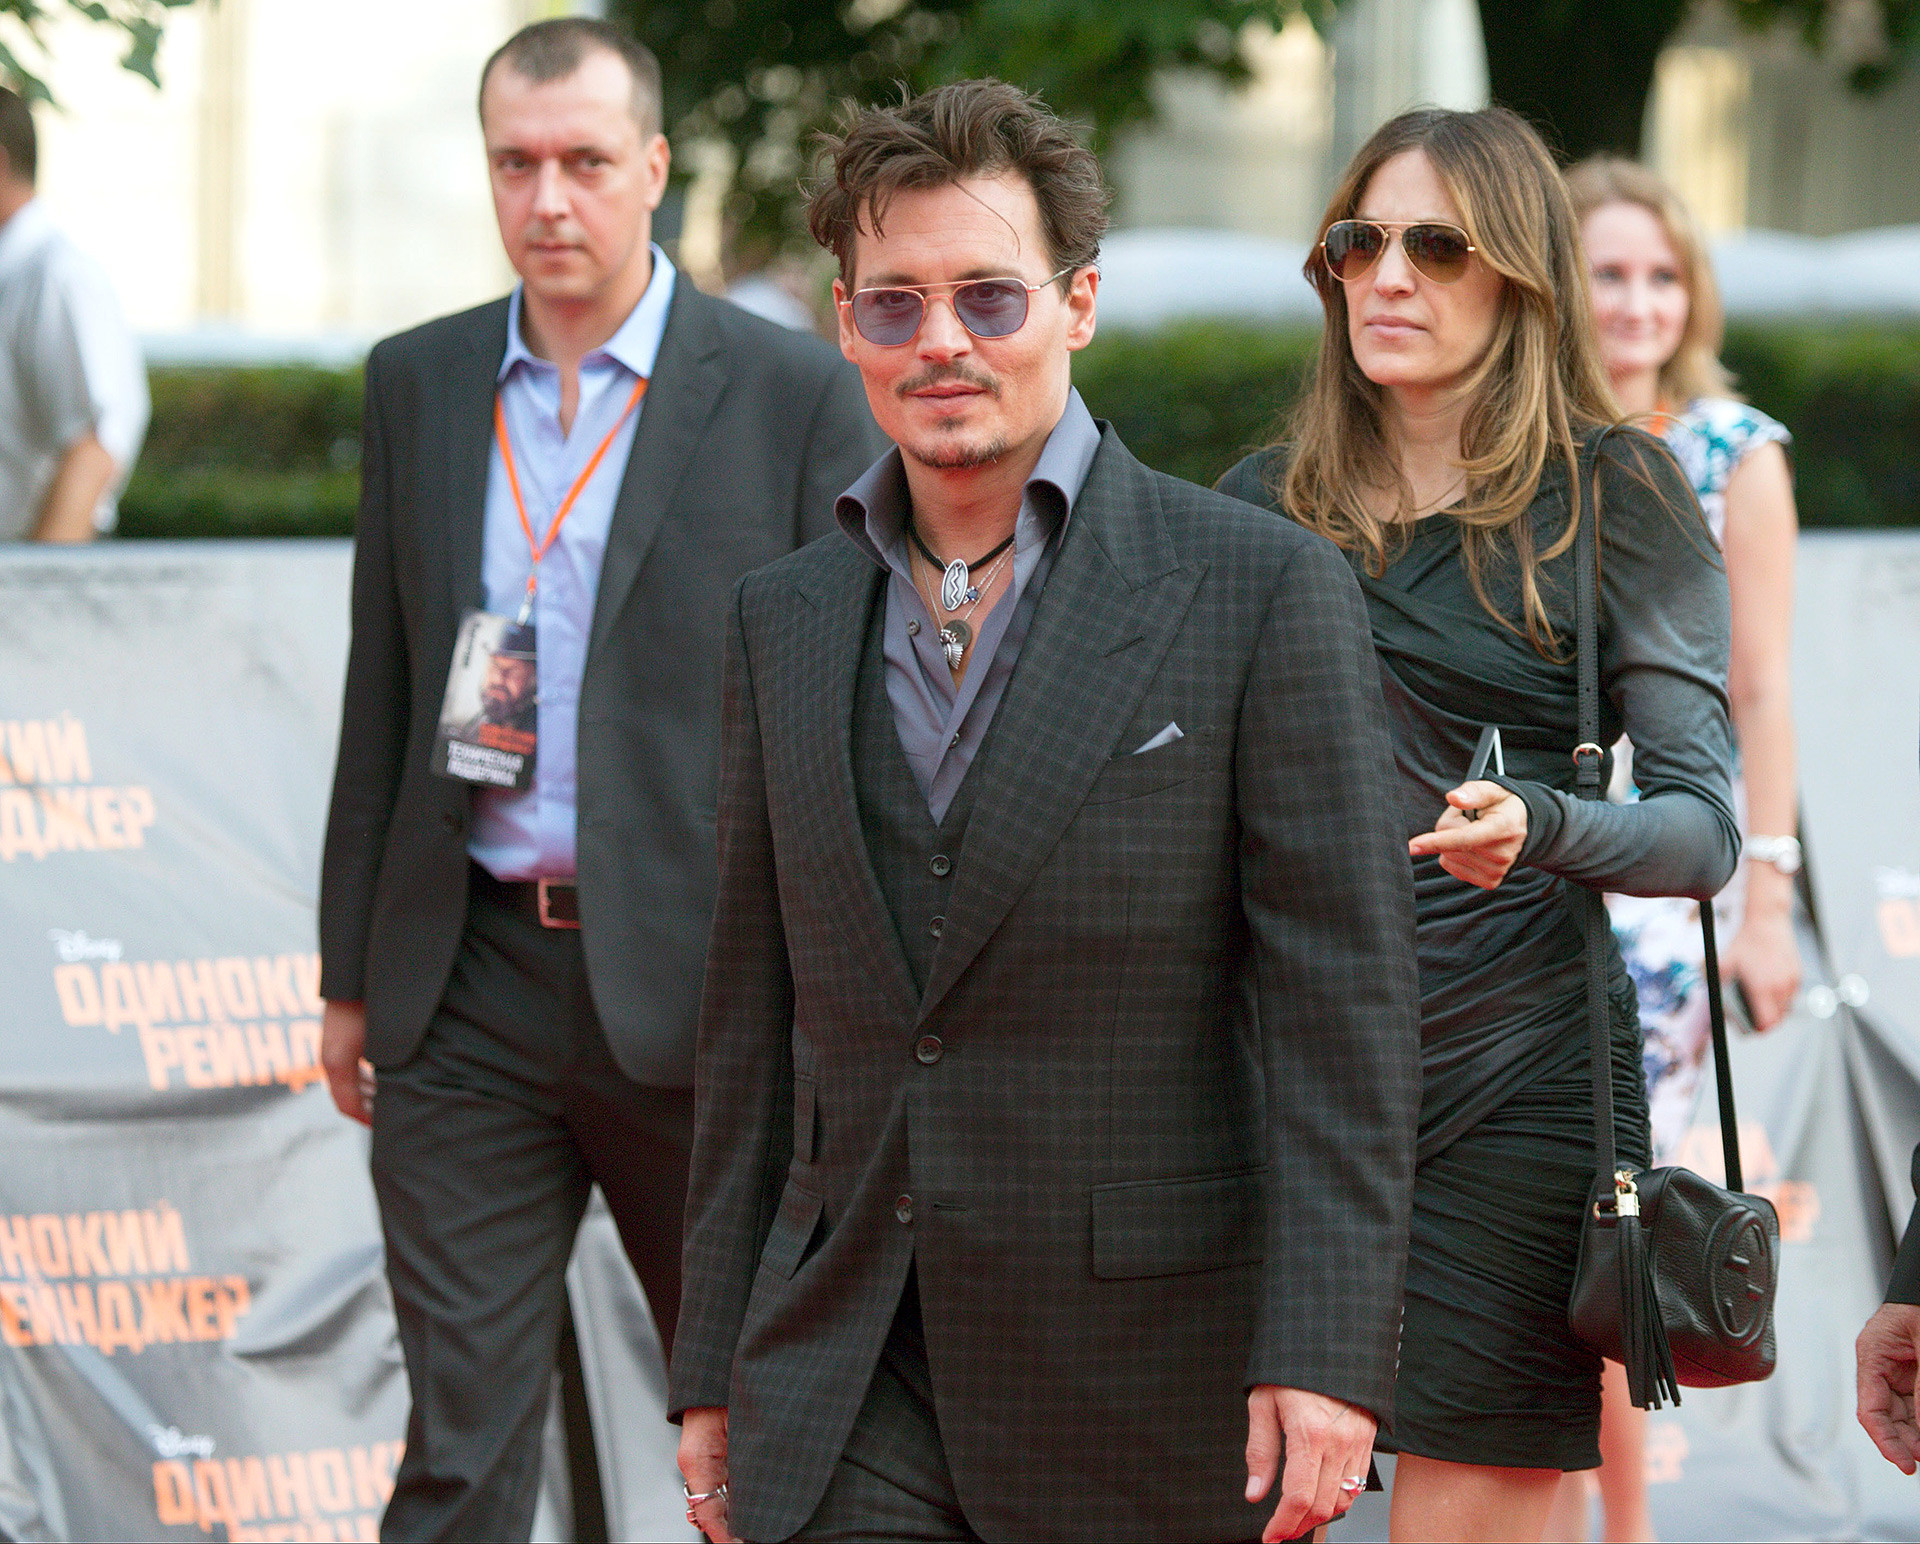 Johnny Depp at the Moscow premiere of